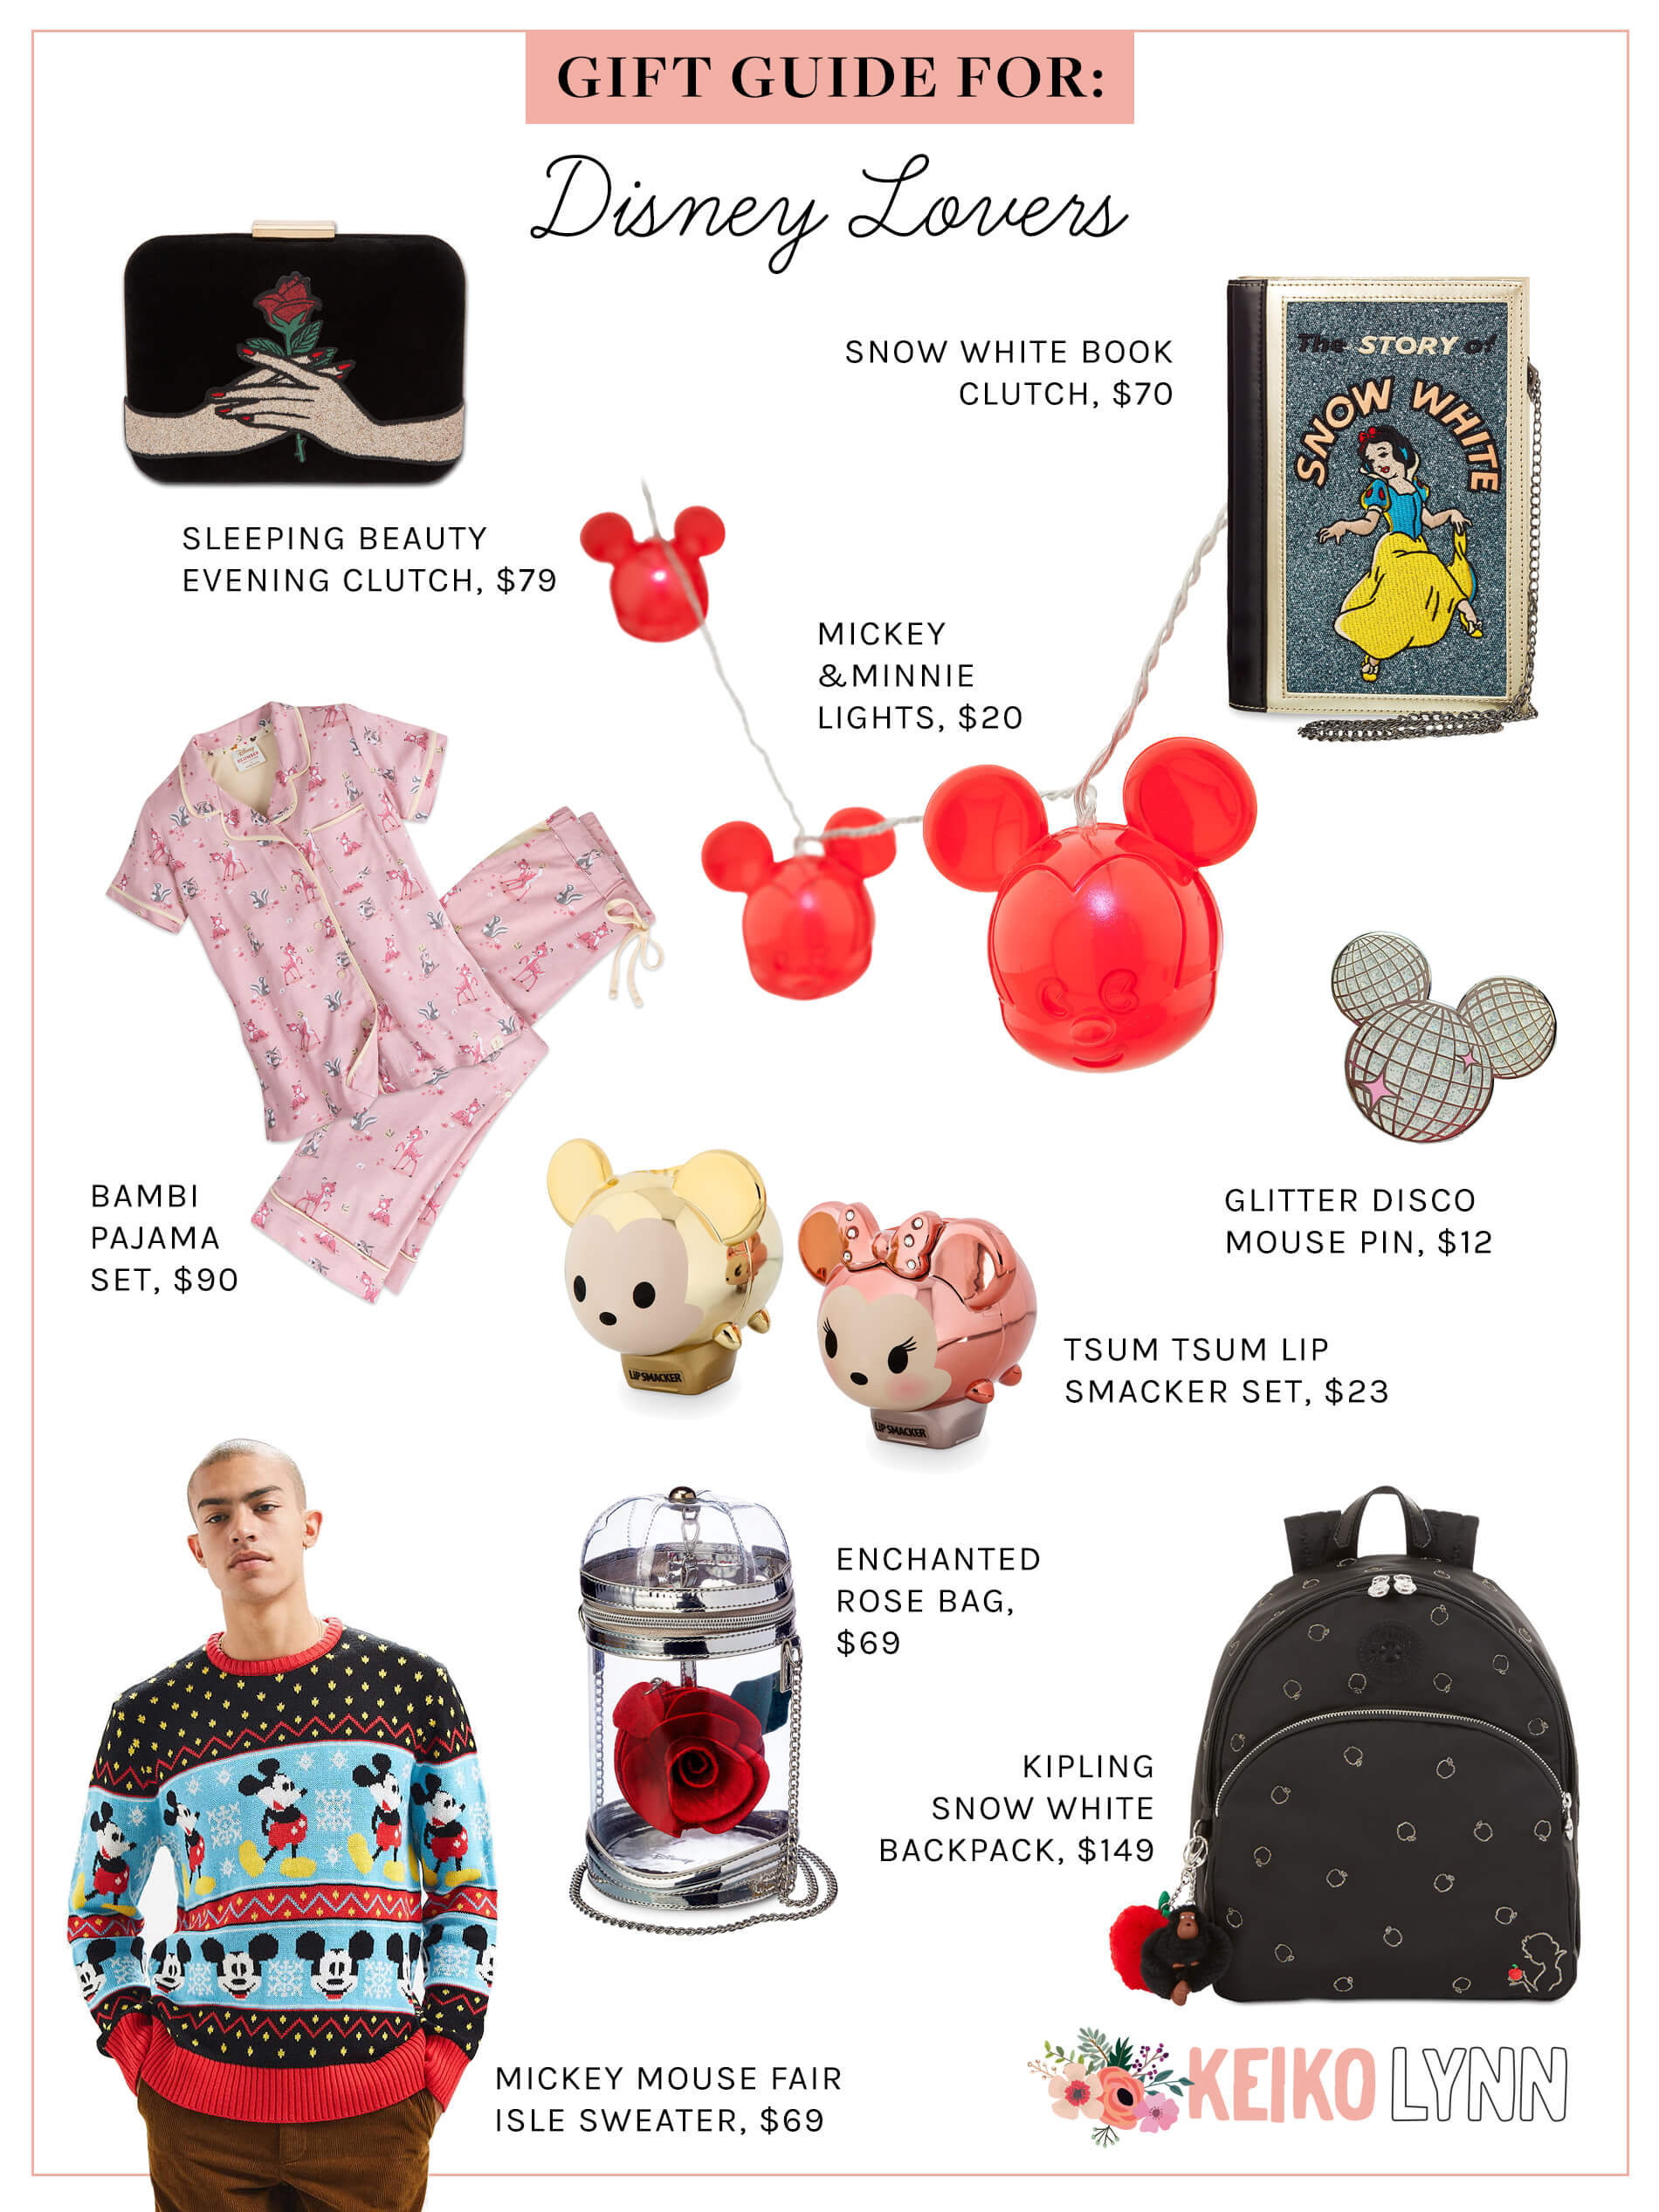 disney gift guide, gift guide for disney lovers, mickey mouse gift guide, snow white gifts, sleeping beauty gifts